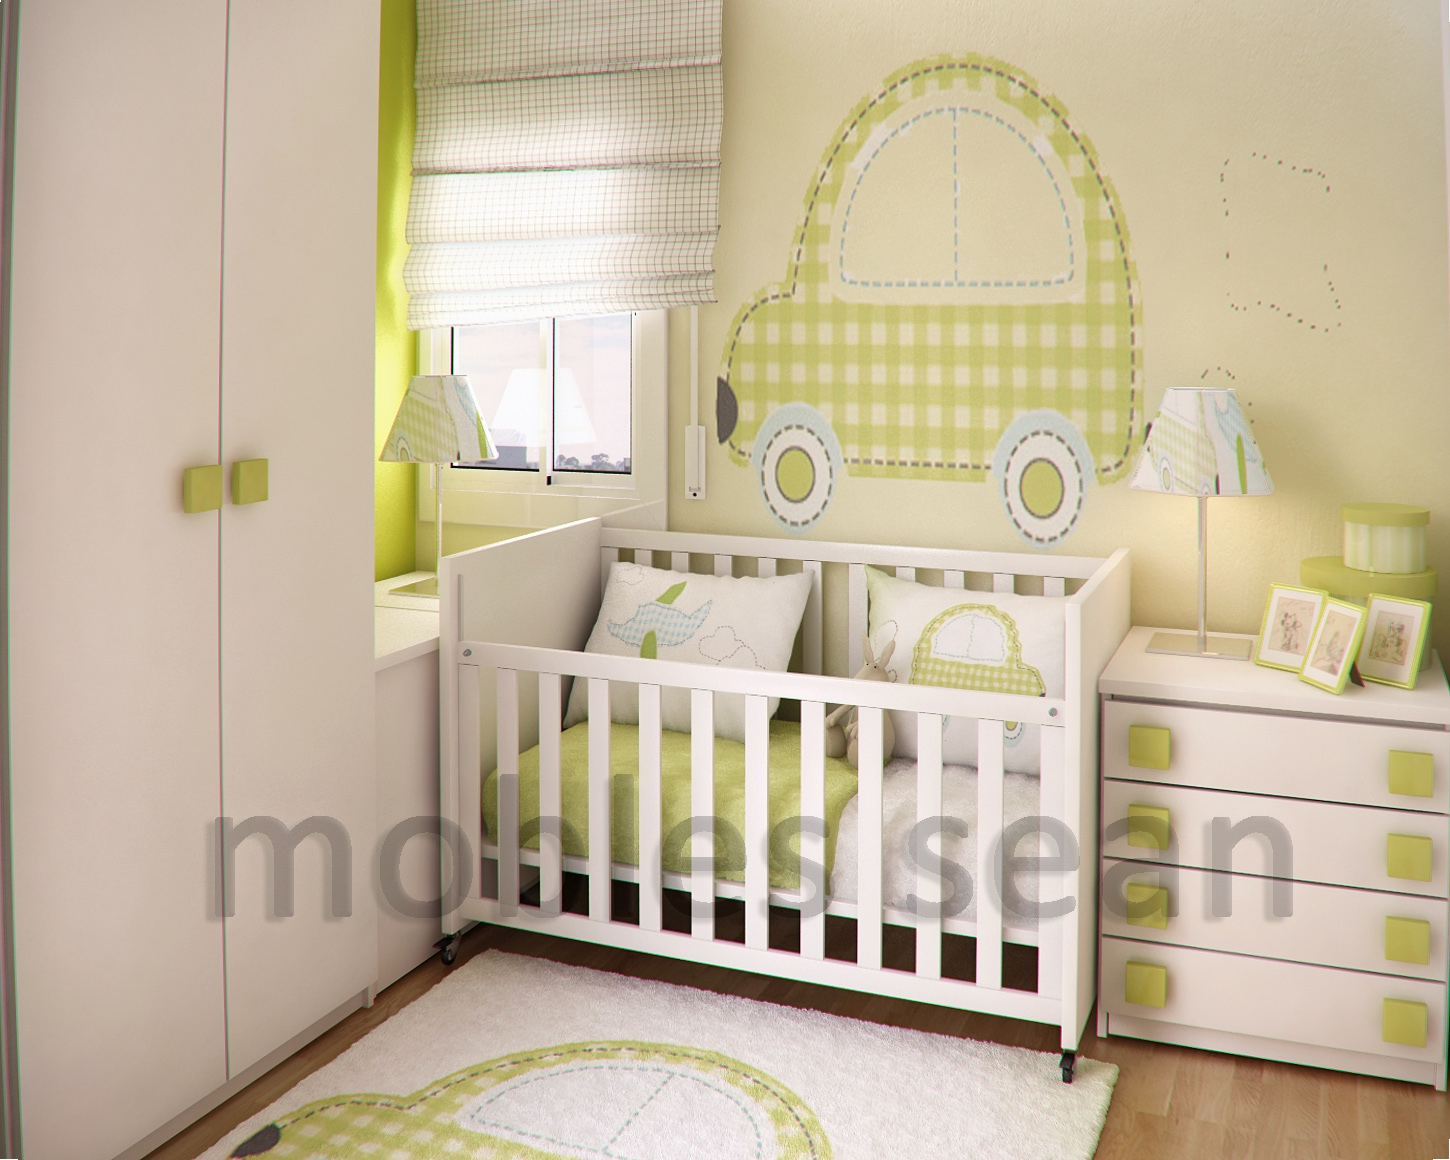 Bedroom Layout Ideas For Small Rooms Spacesaving Designs For Small Kids Rooms